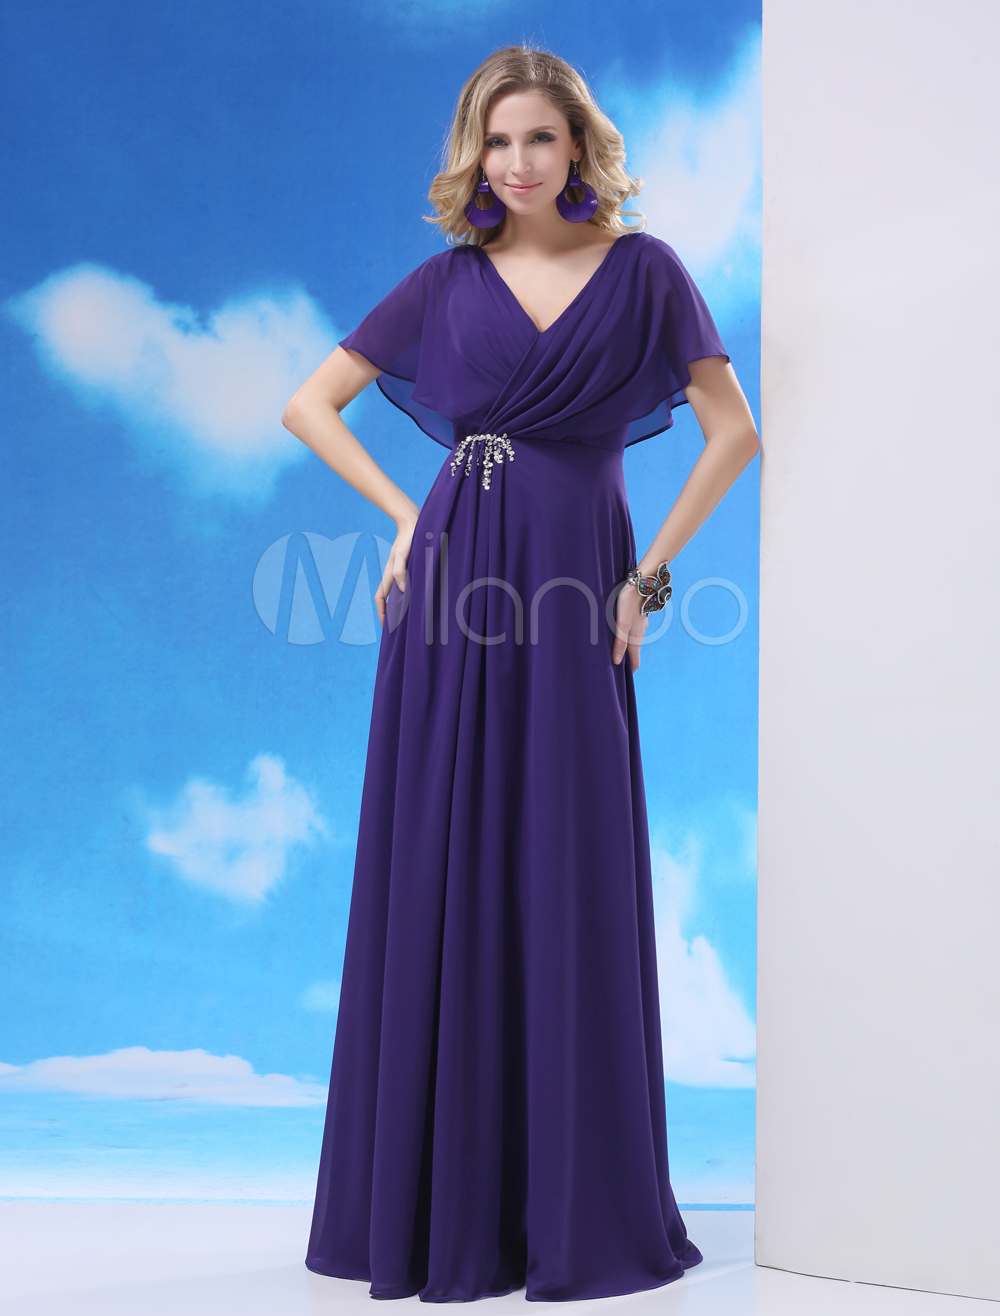 Chiffon dress with flutter sleeves